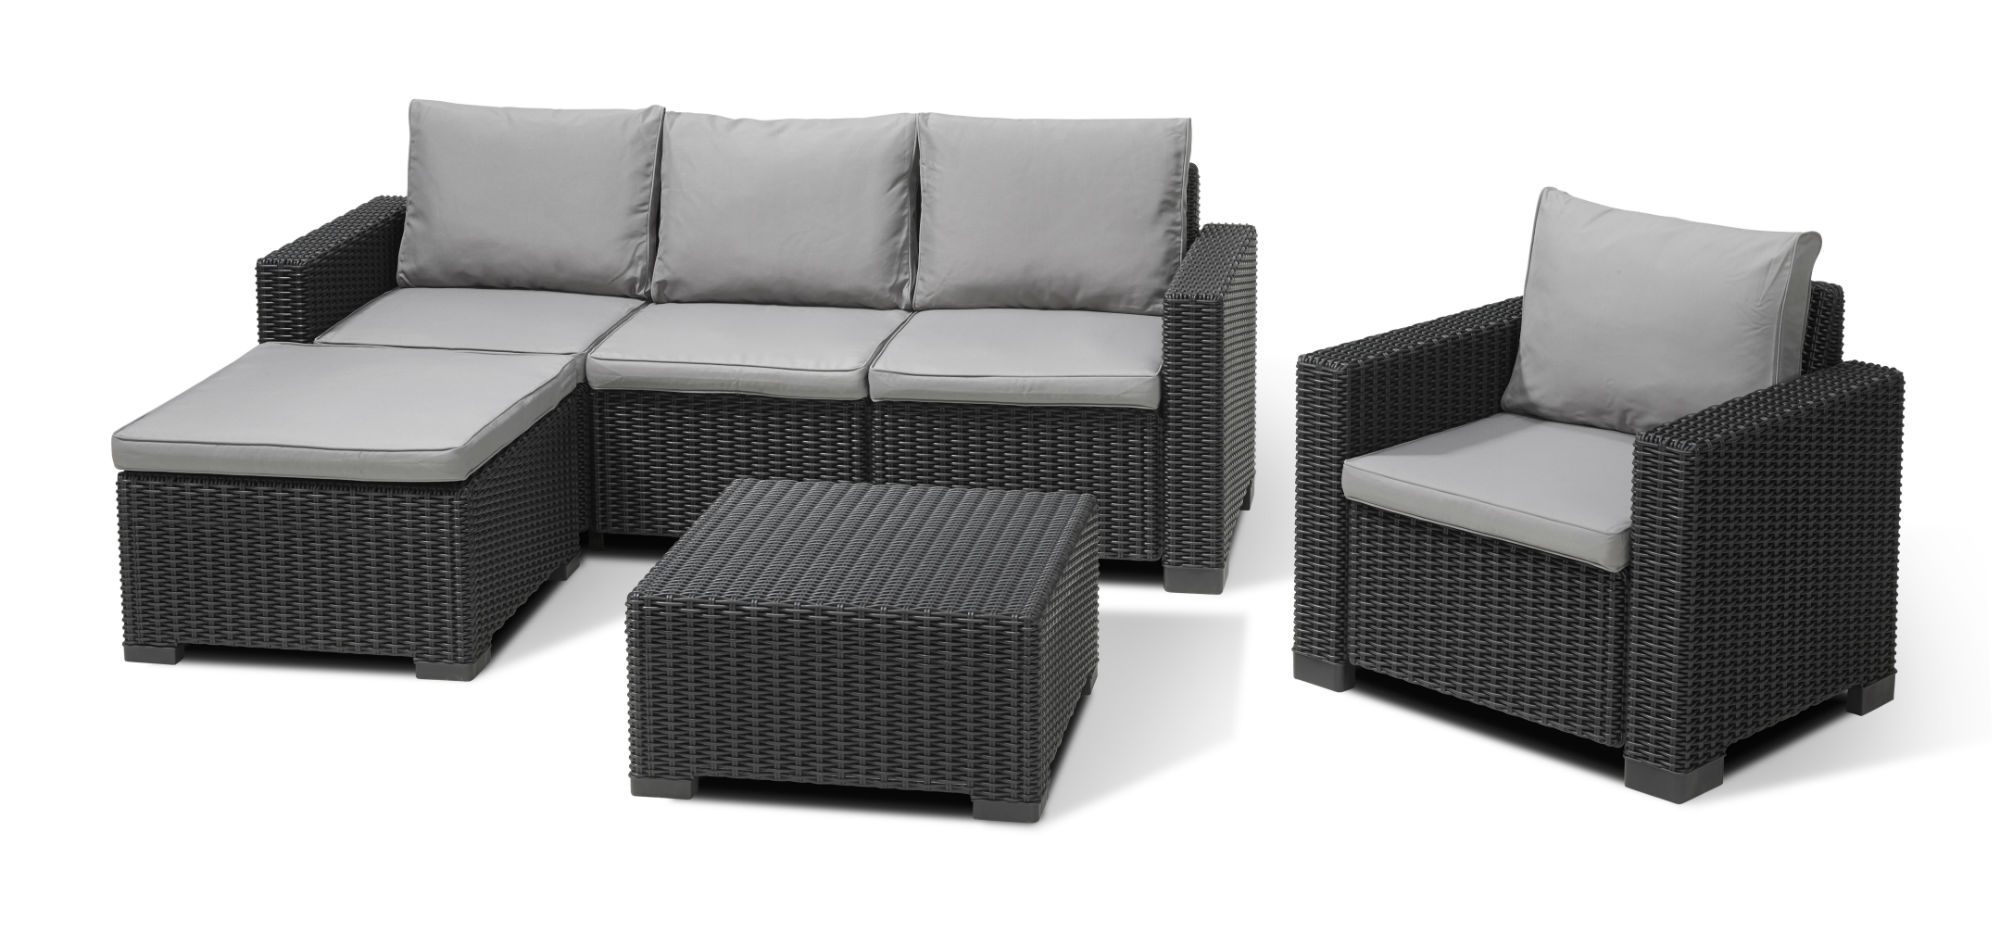 Allibert moorea ensemble de salon graphite allibert - Salon de jardin allibert hawaii lounge set ...